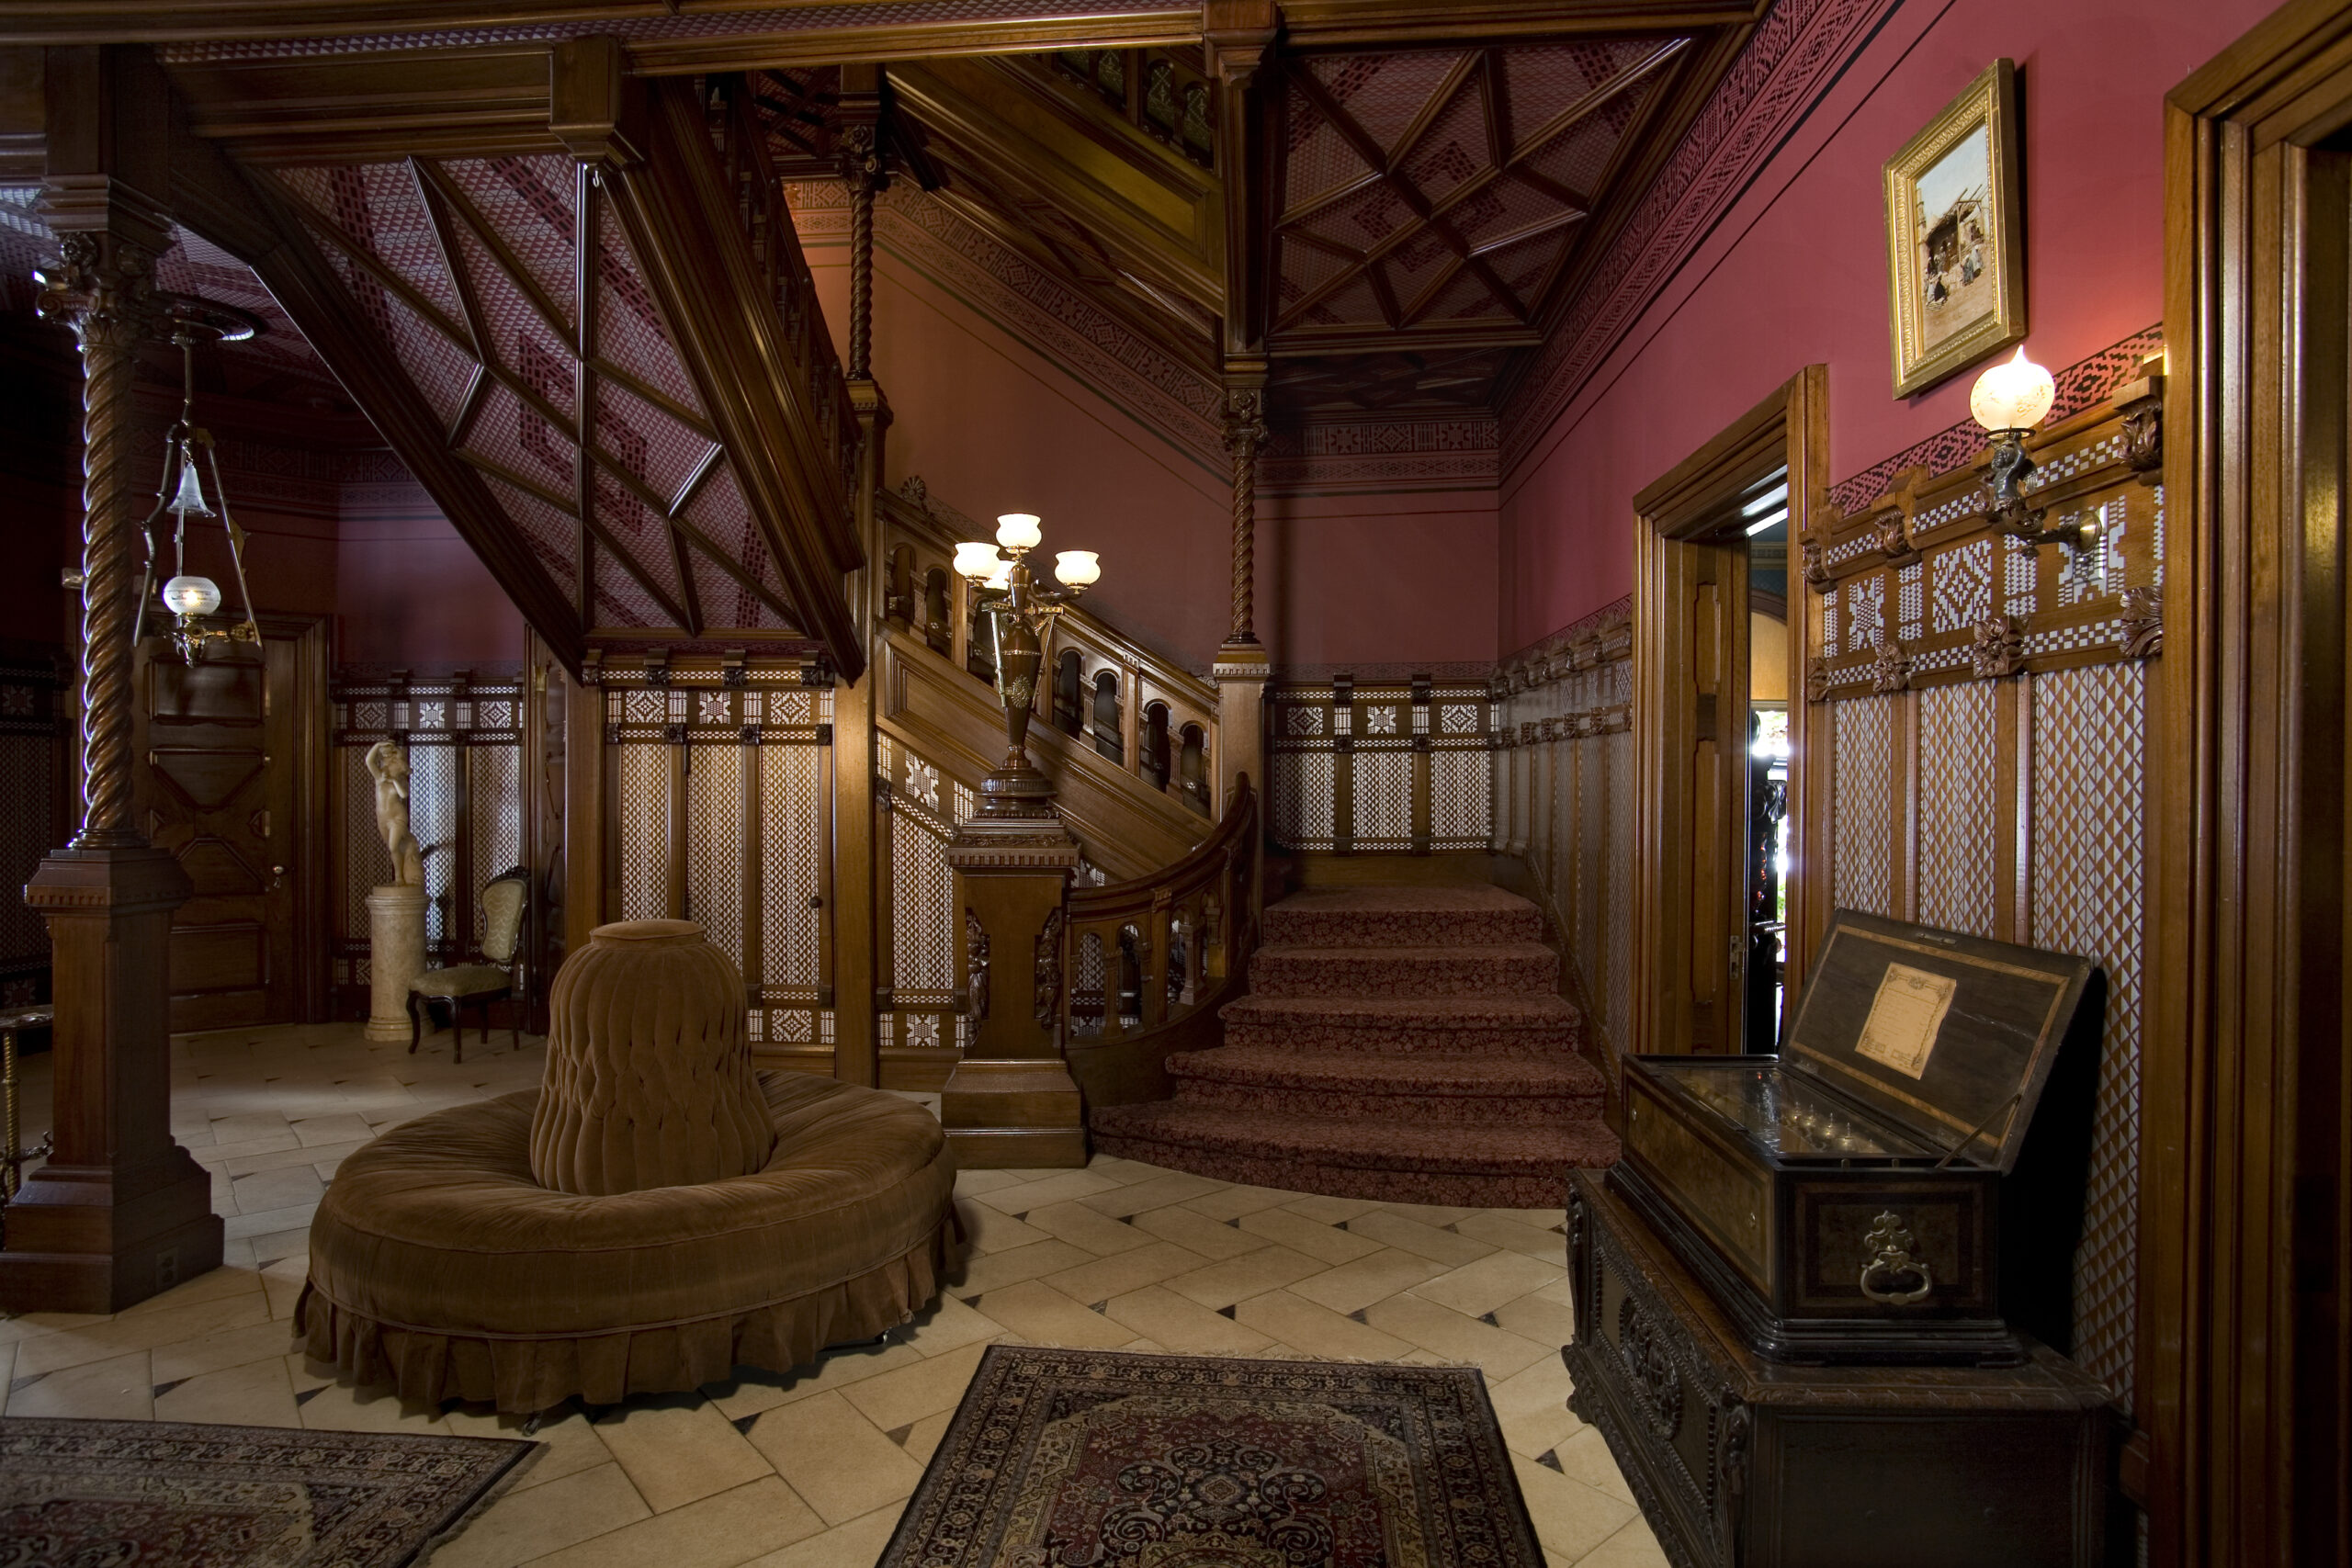 Entrance Hall: Inspiration for the design was drawn from Middle Eastern and Asian cultures